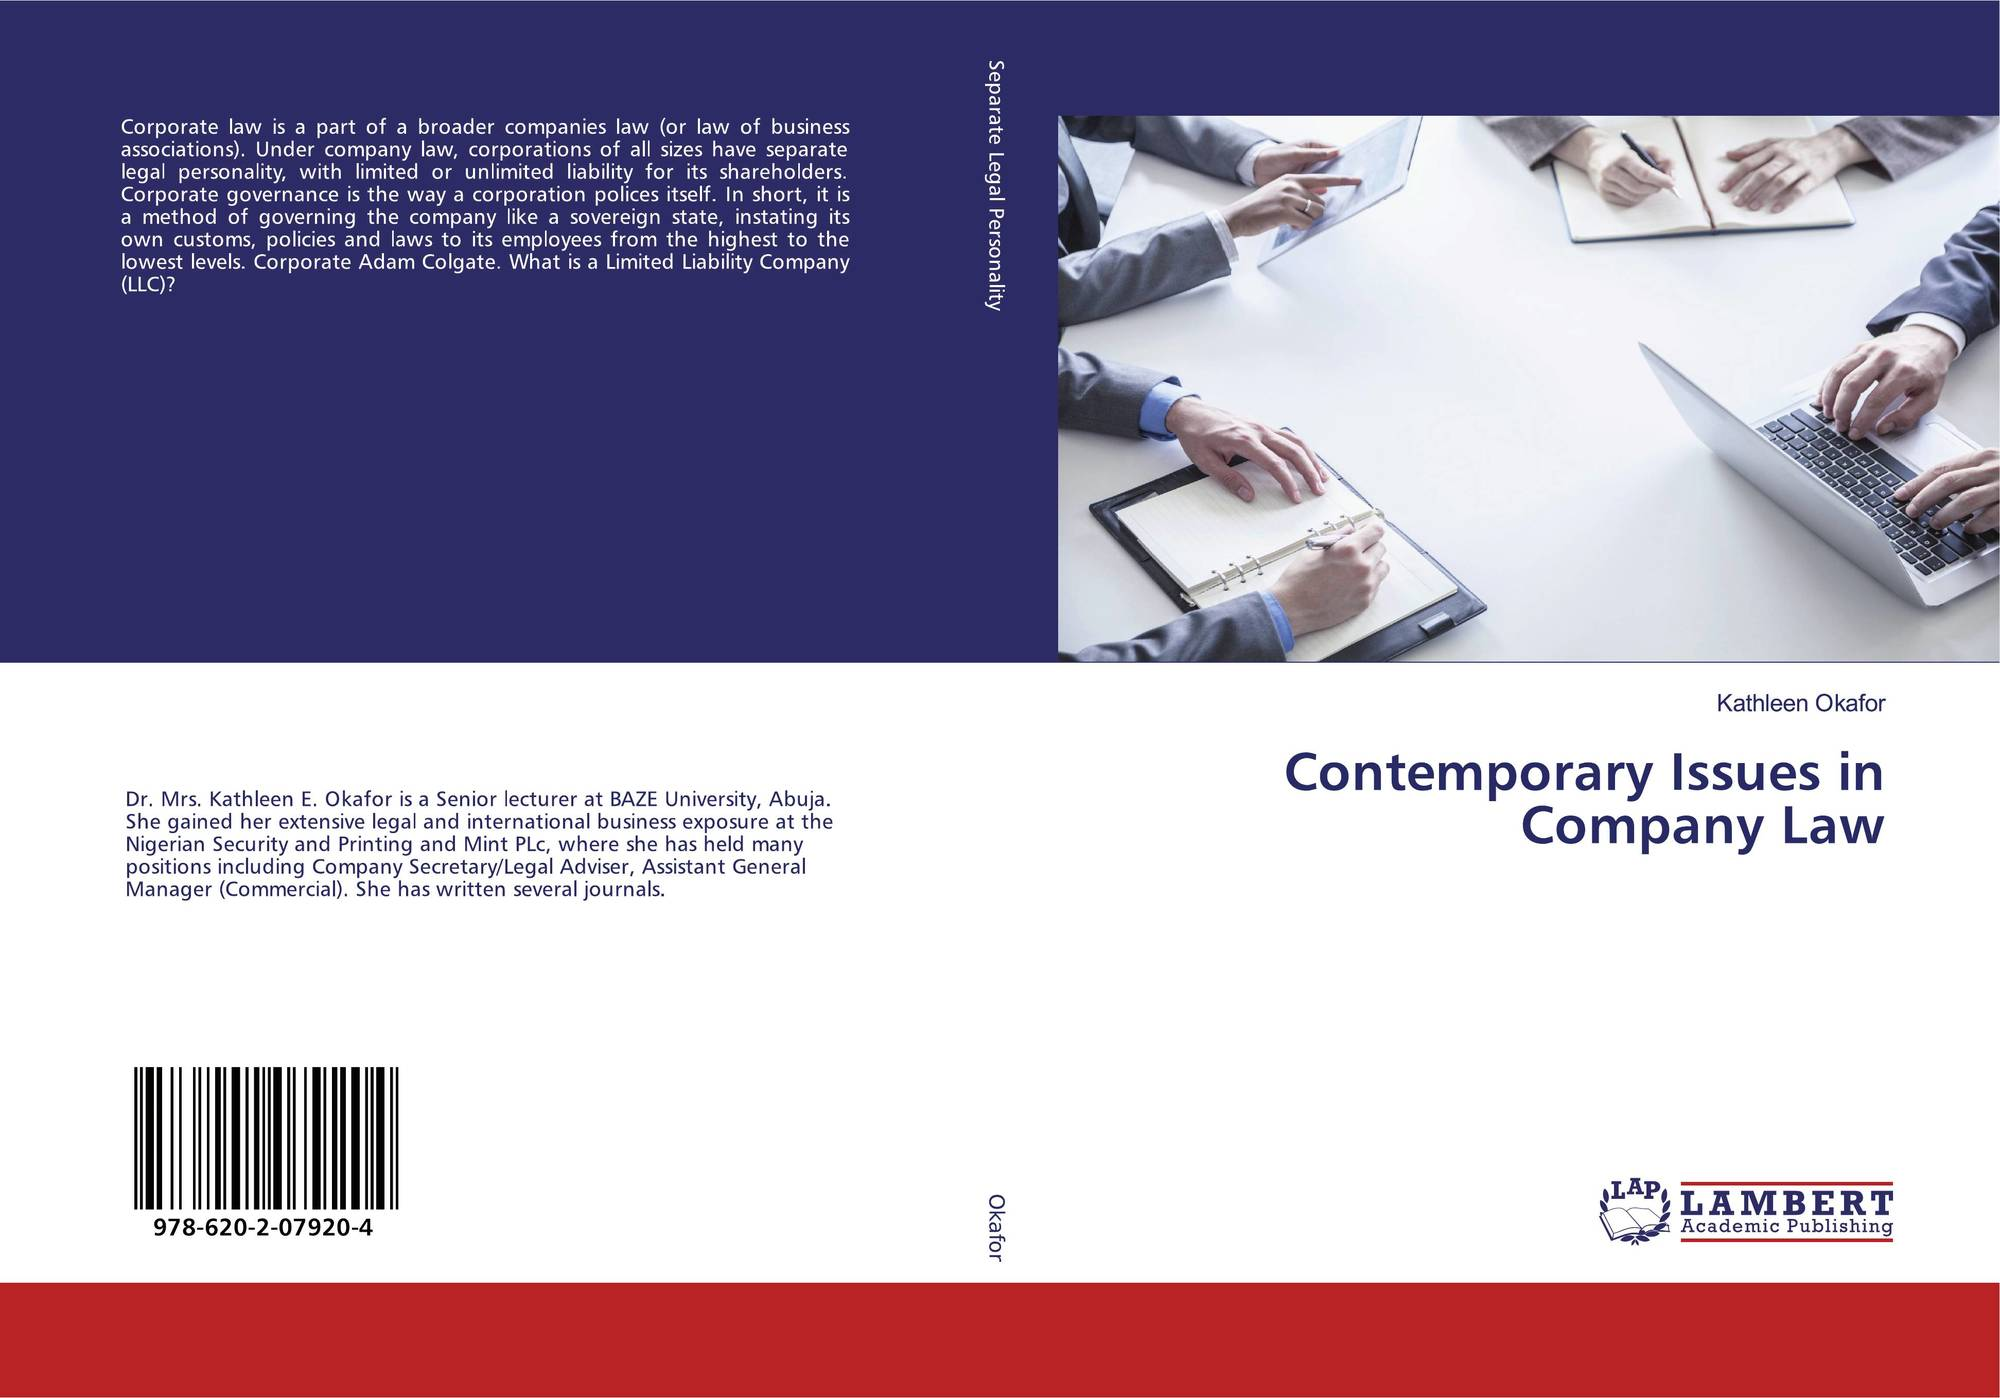 contemporary issues in nigeria public administration Definition of contemporary: having particular relevance to the present timeexamples of current contemporary issues: international conflict terrorism pollution & waste management natural resources & energy conservation urban development bioethics market & workforce globalization mobile technology & communications information.